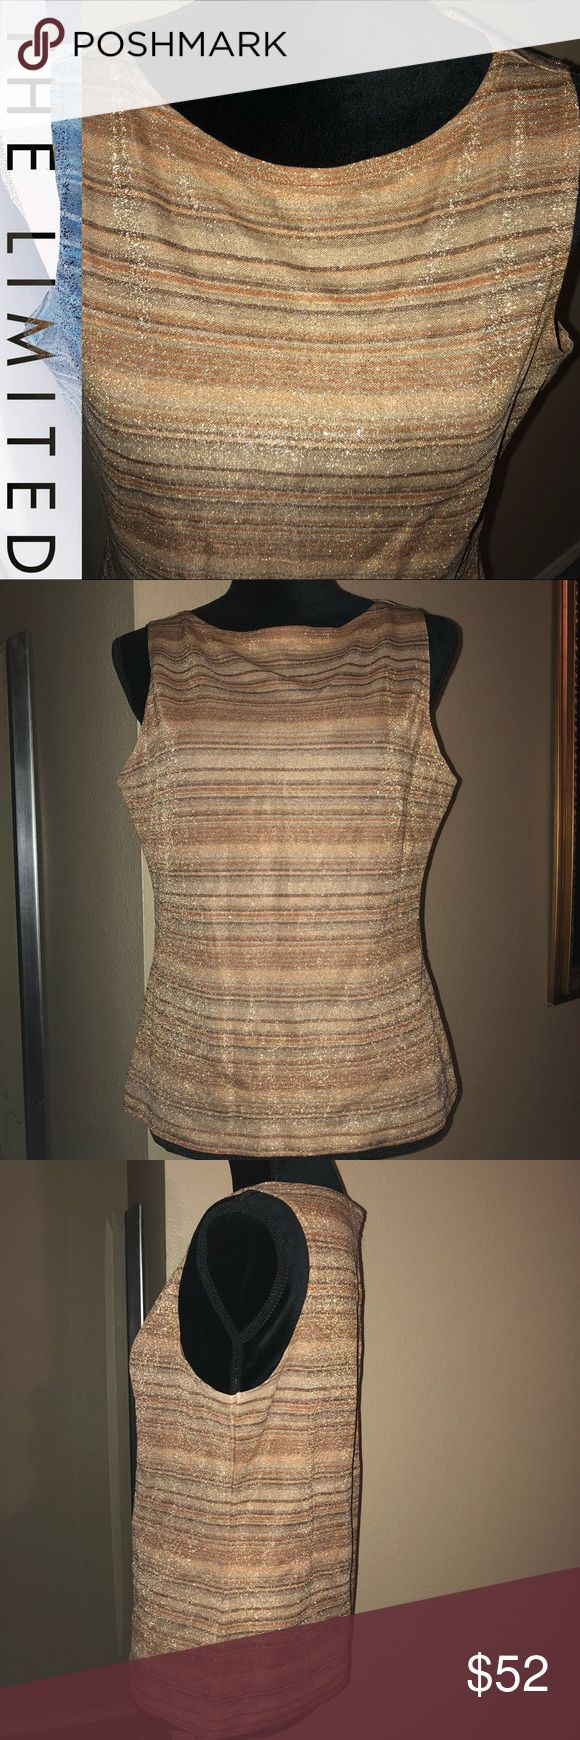 """✨The Limited Metallic Gold/Bronze Stripe Cami/Top Preloved BEAUTIFUL glittery metallic Gold/Bronze/Copper Couture cami/tank by THE LIMITED with soft stripes throughout! Classic crewneck, 87% Nylon, 13% Metallic.   Laying flat: 13.5"""" shoulder to shoulder, 19.5"""" armpit to armpit, 22"""" Top shoulder band to bottom hem. Has some stretch, which adds an additional 2""""- 3"""" of room!  Stunning to complete any ensemble for any occasion! See last pic for gold silk ruched Button Down that is FAB w/it…"""